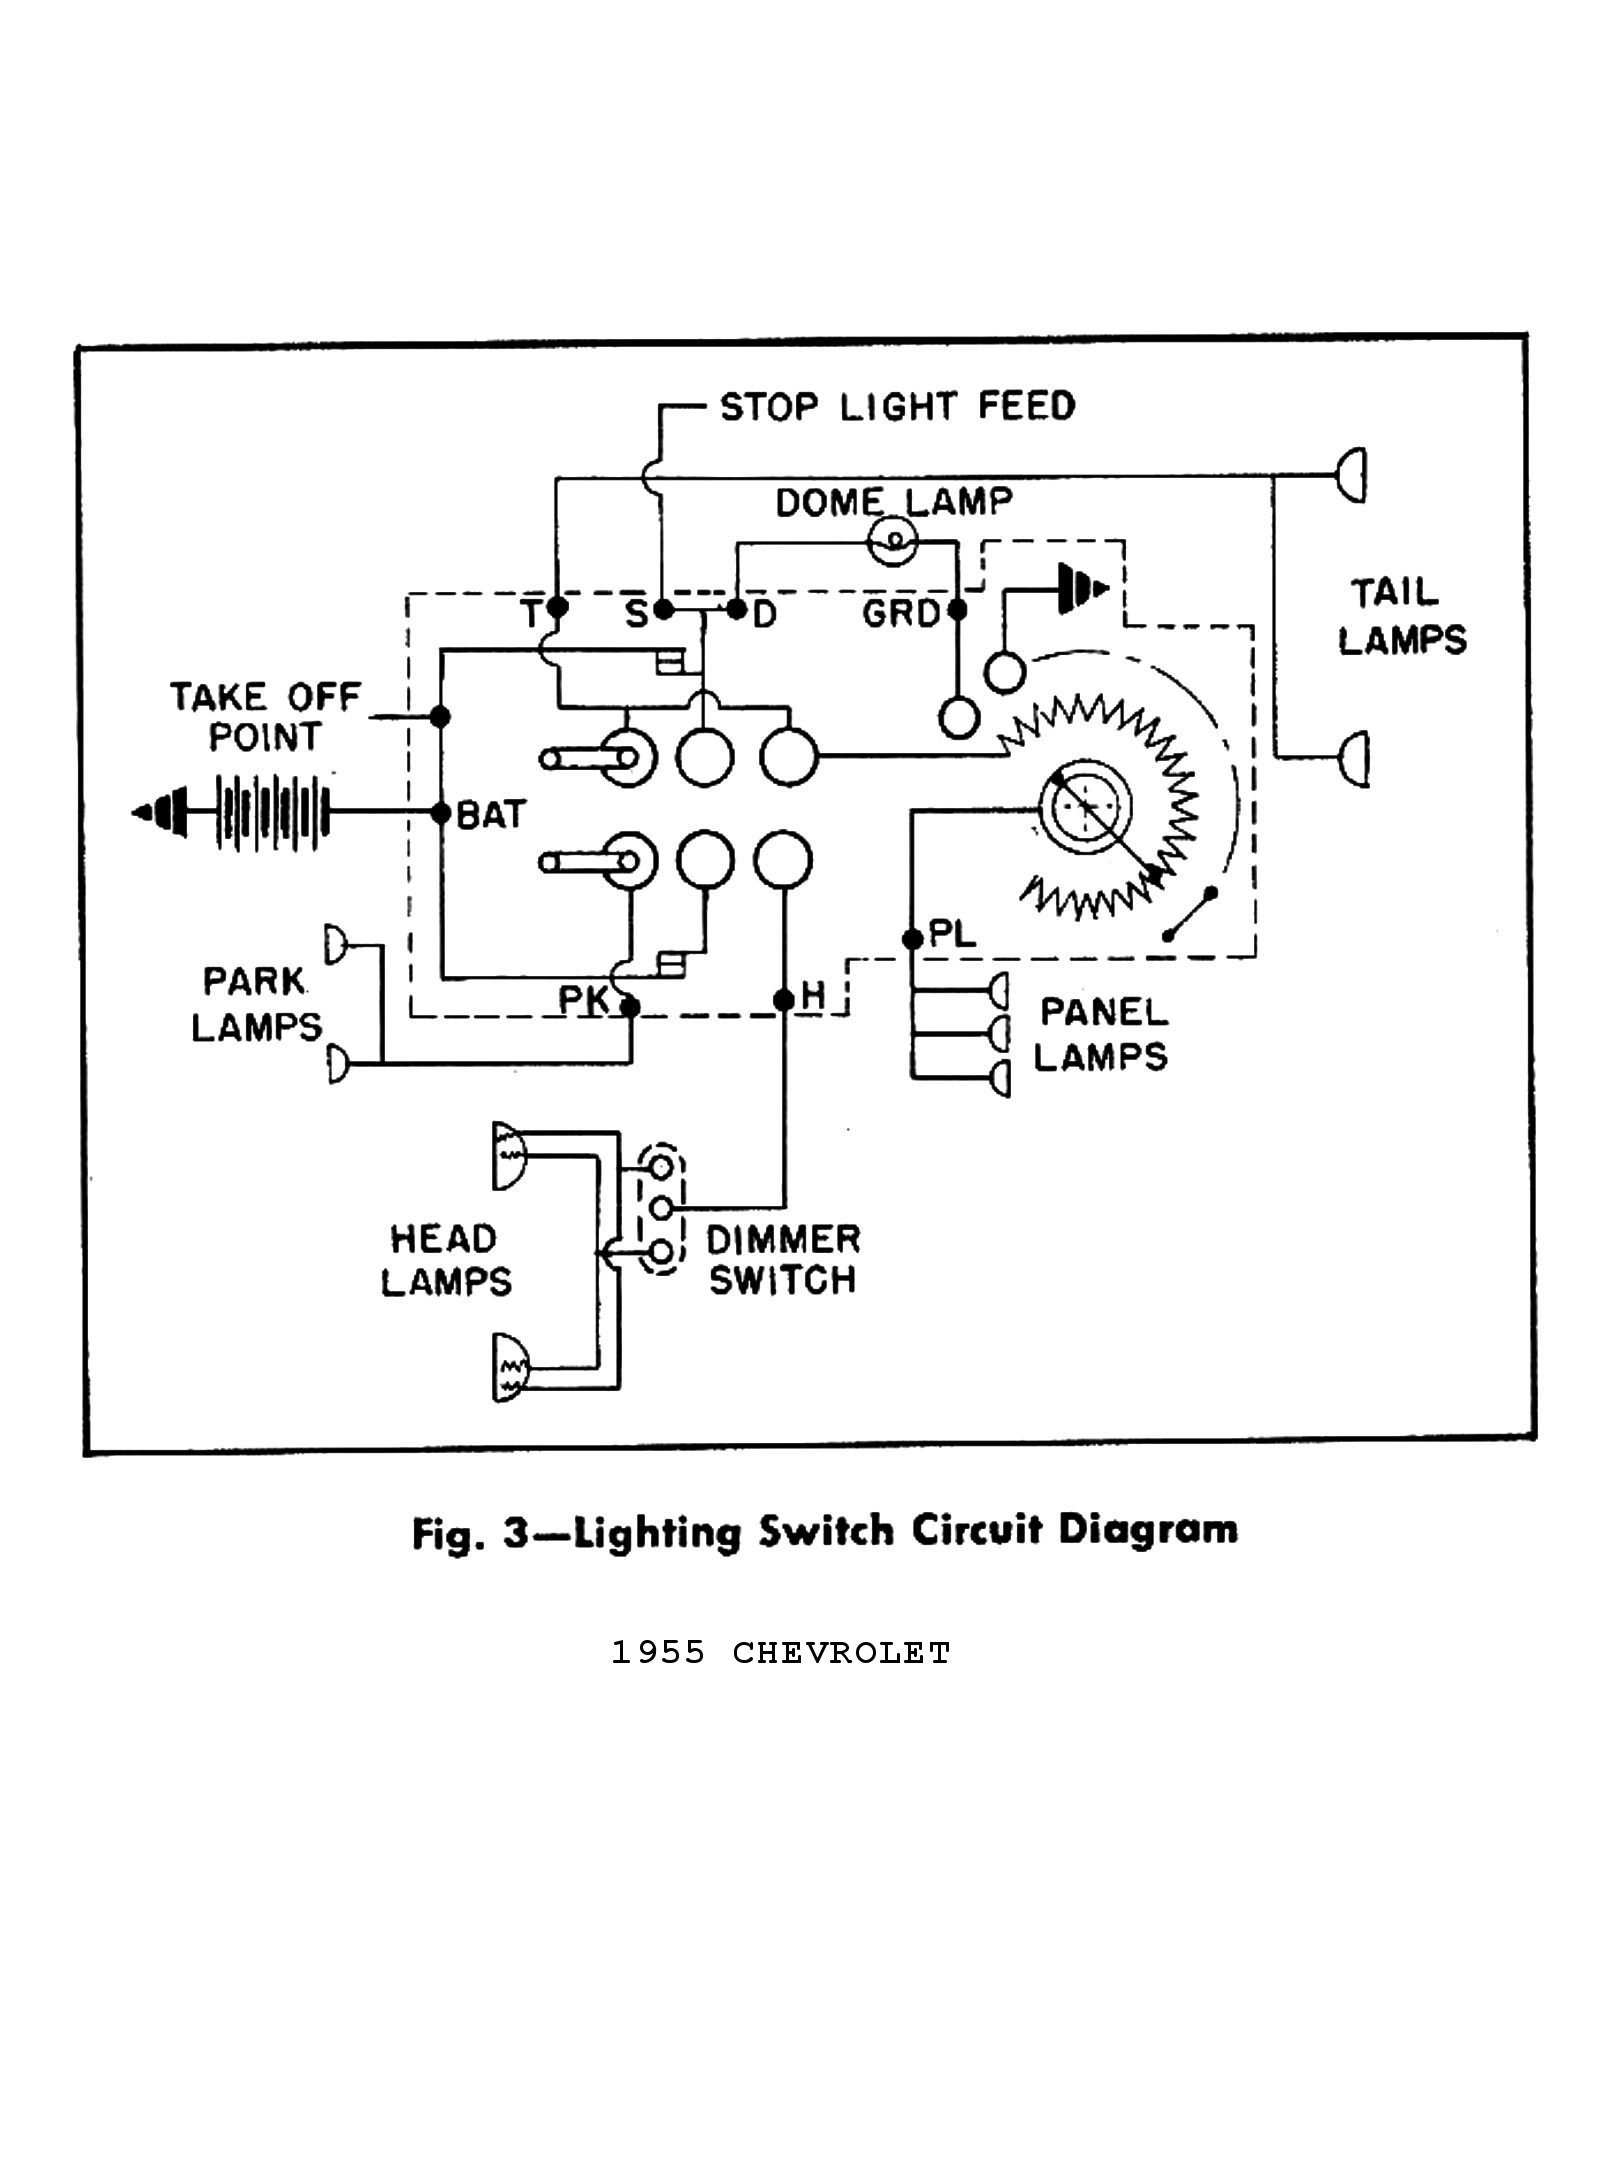 55ctsm1203 light switch wiring diagram on 59?? the 1947 present chevrolet 1959 chevy truck wiring diagram at webbmarketing.co